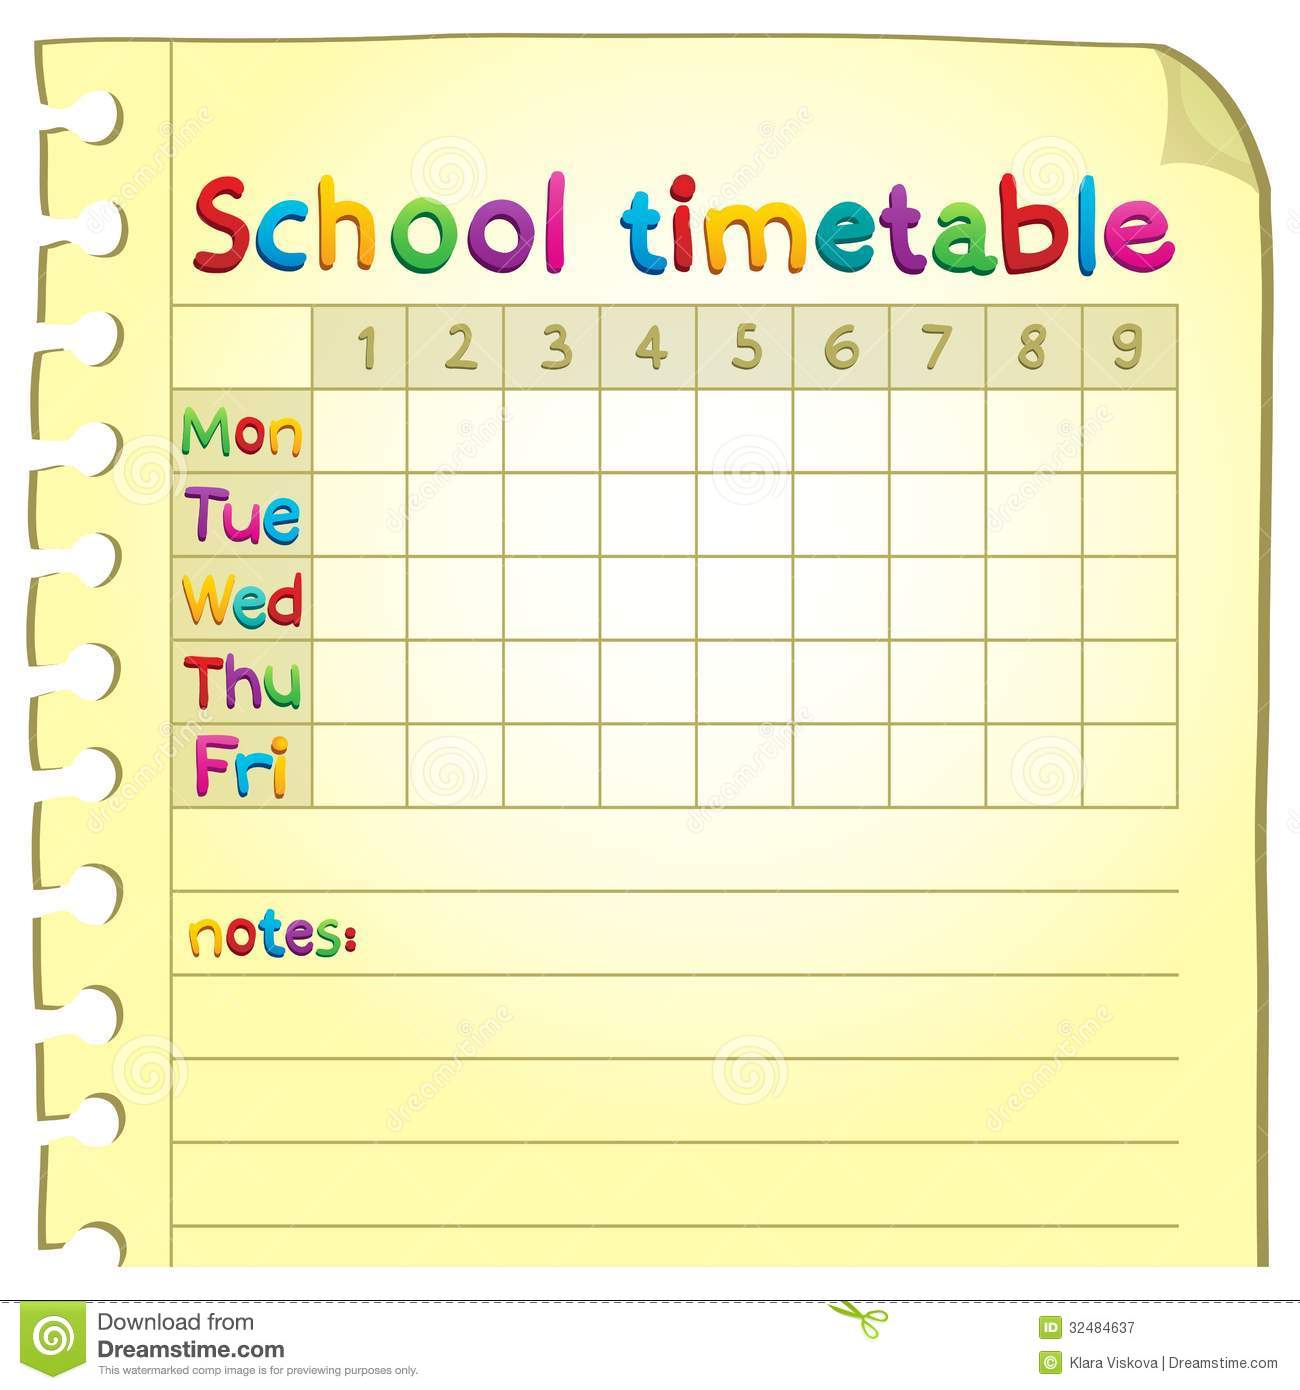 Quotes On School Time Table: School Timetable Topic Image 4 Stock Vector